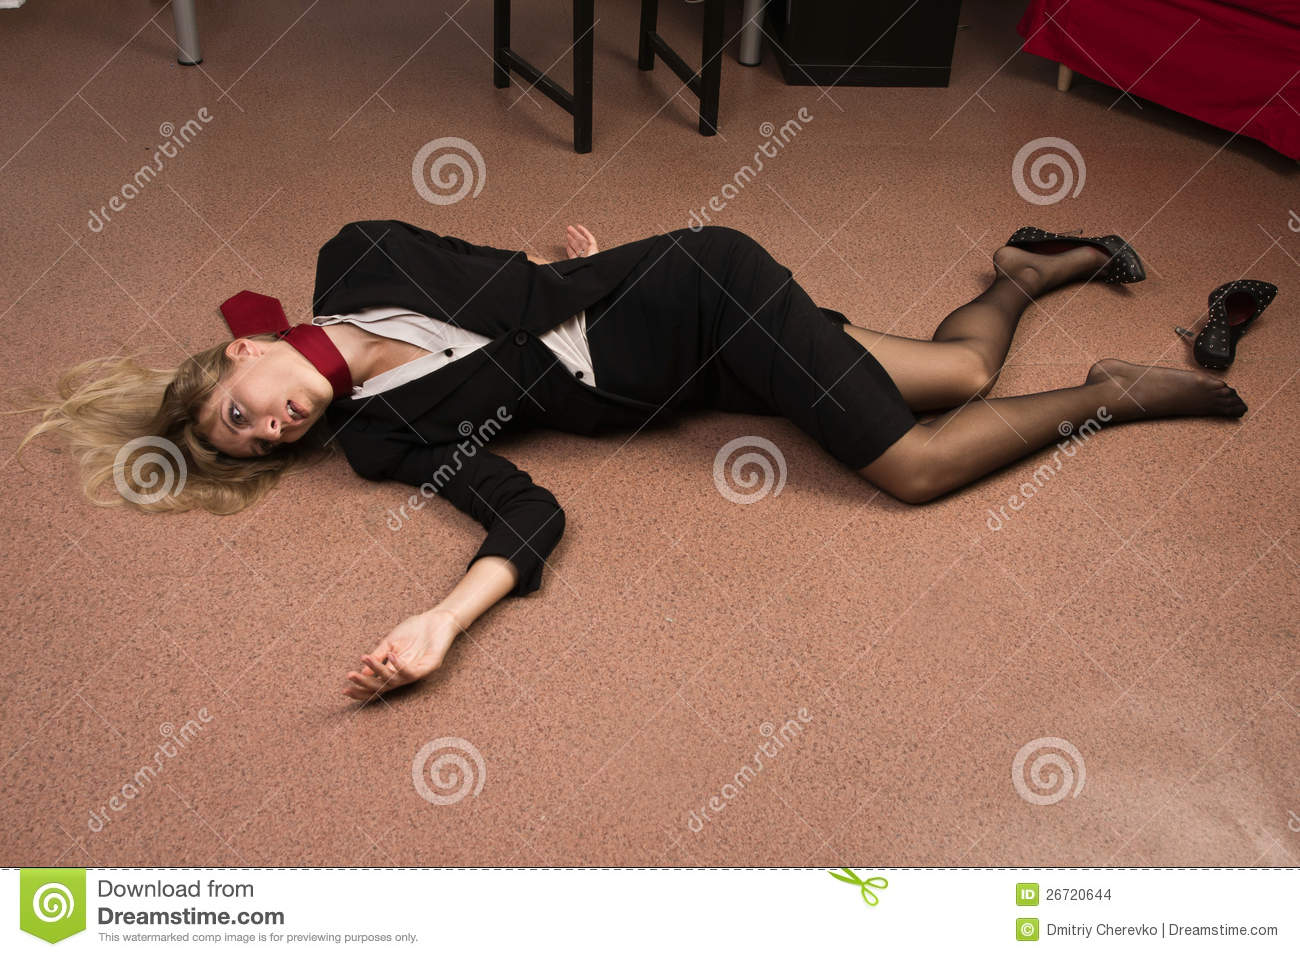 Lifeless Business Woman Lying On The Floor Stock Images  : lifeless business woman lying floor 26720644 from www.dreamstime.com size 1300 x 957 jpeg 174kB